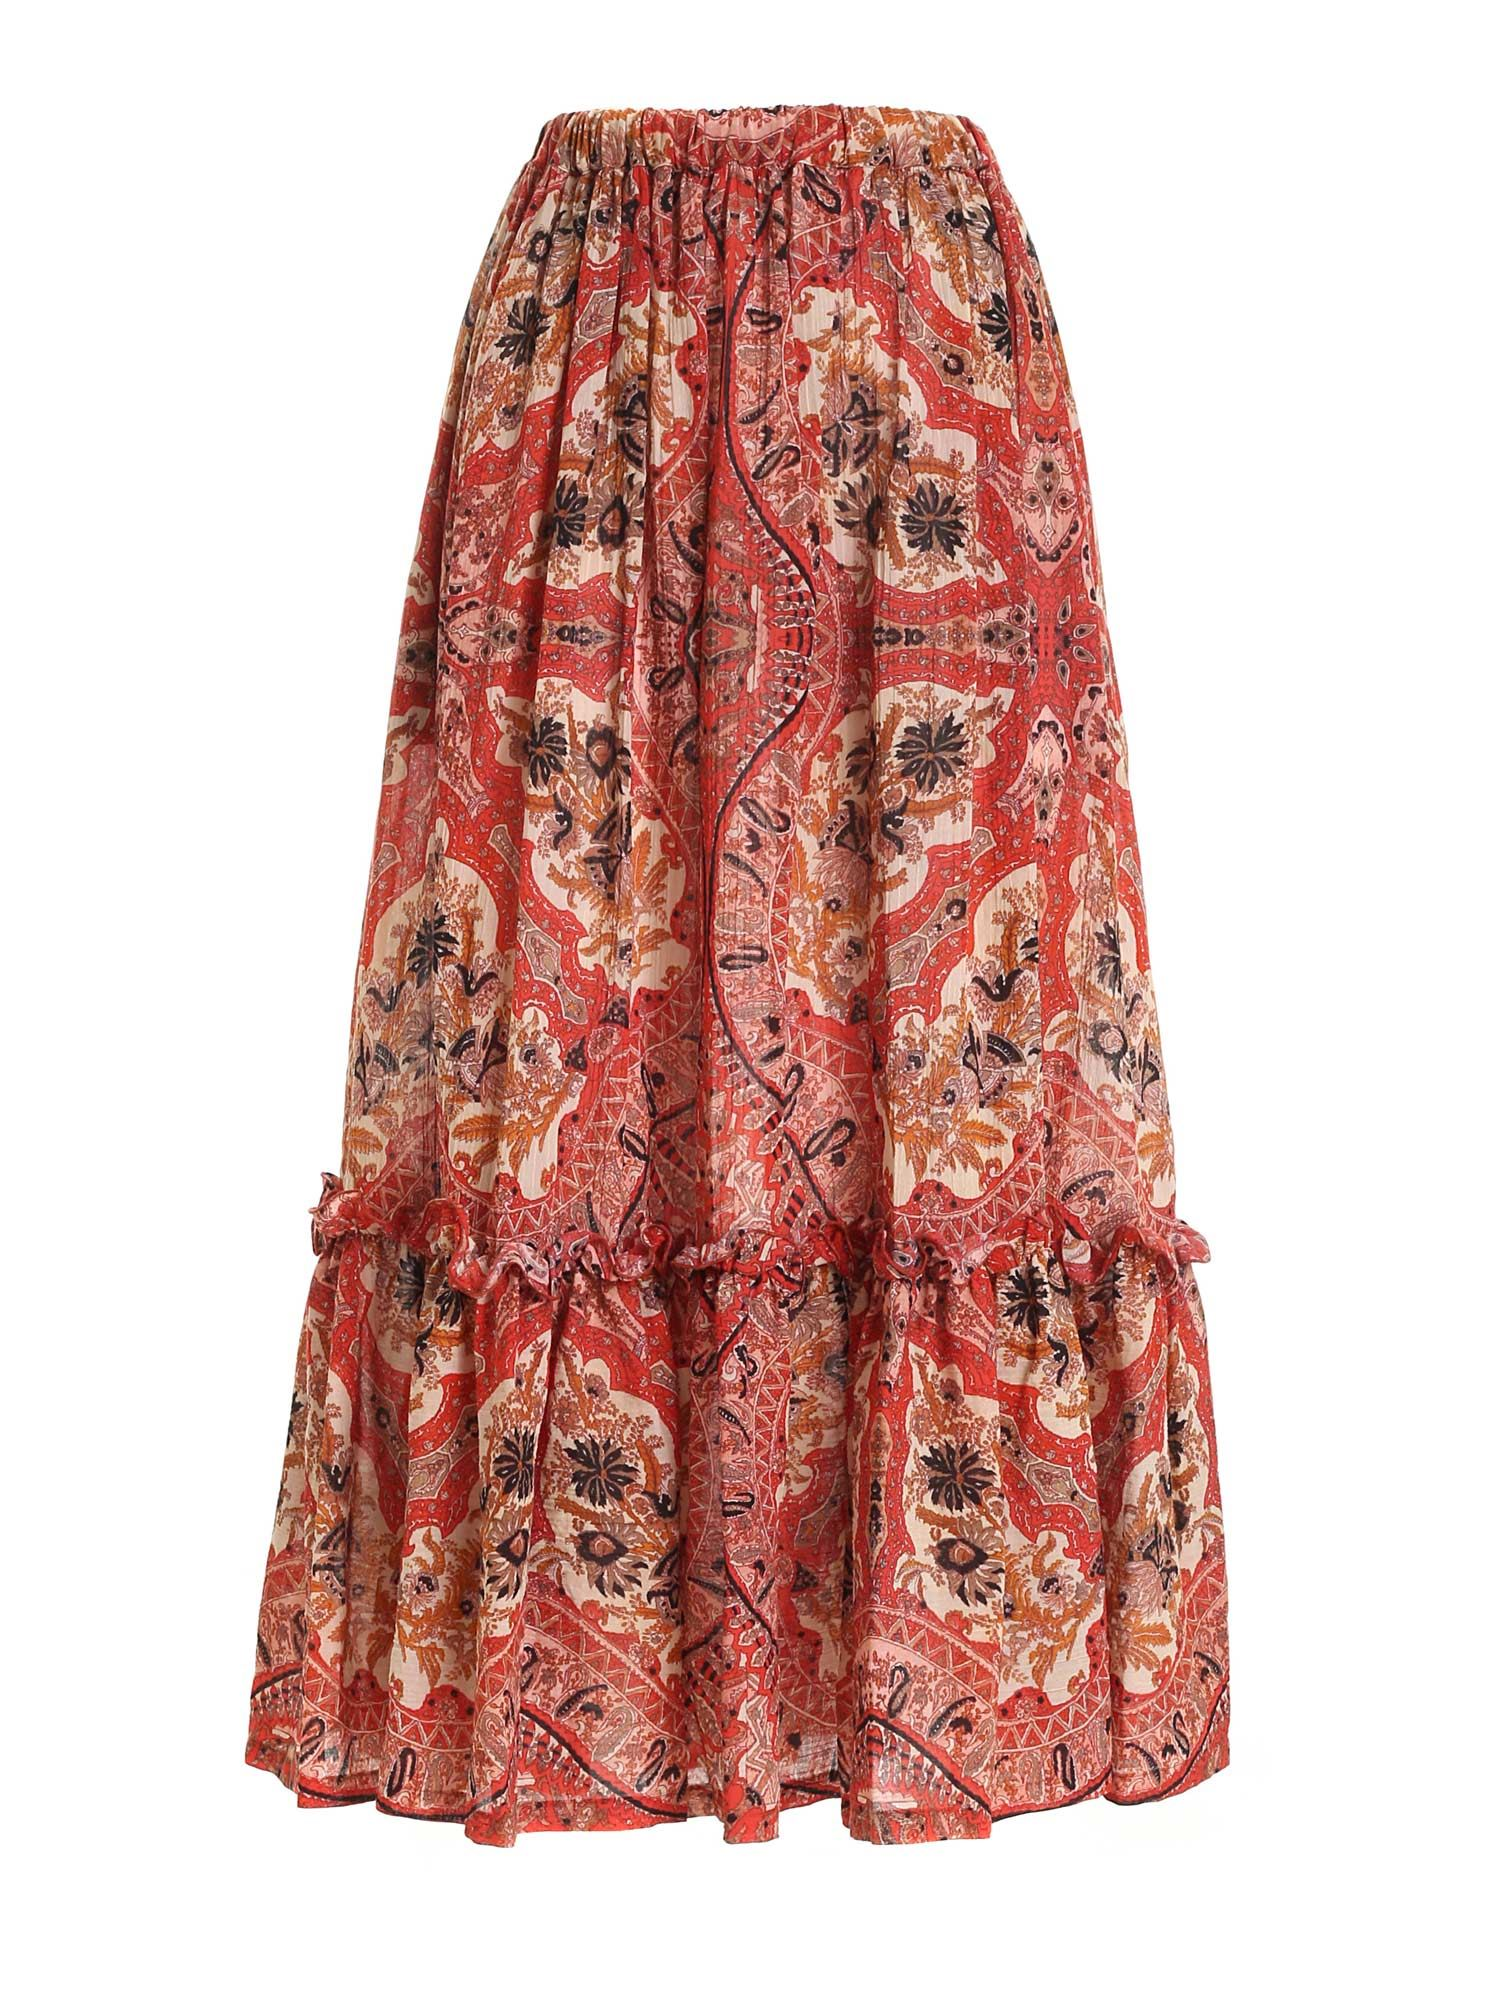 Etro PRINTED MULTICOLOR SKIRT